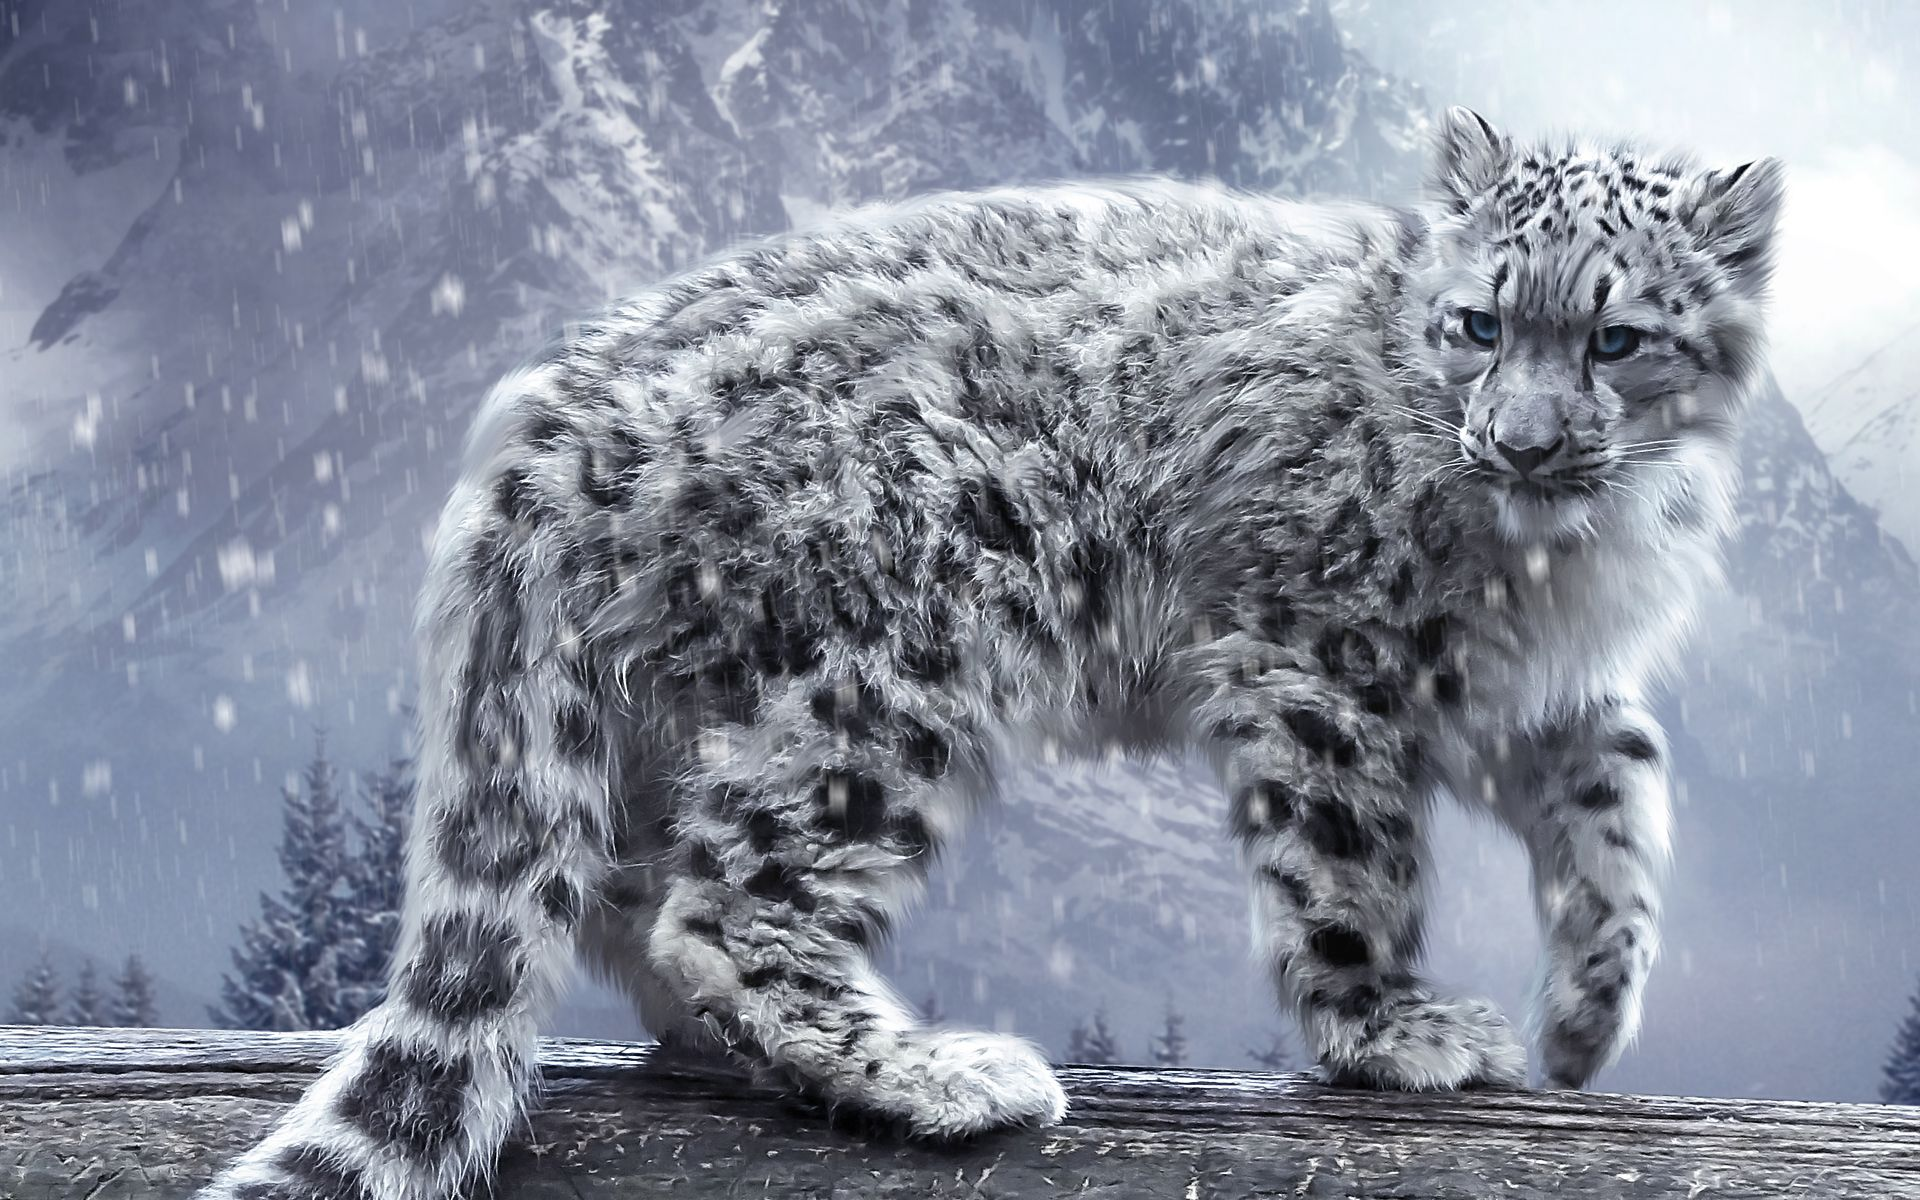 HD Wallpaper And Background Photos Of Snow Leopard For Fans Animals Images